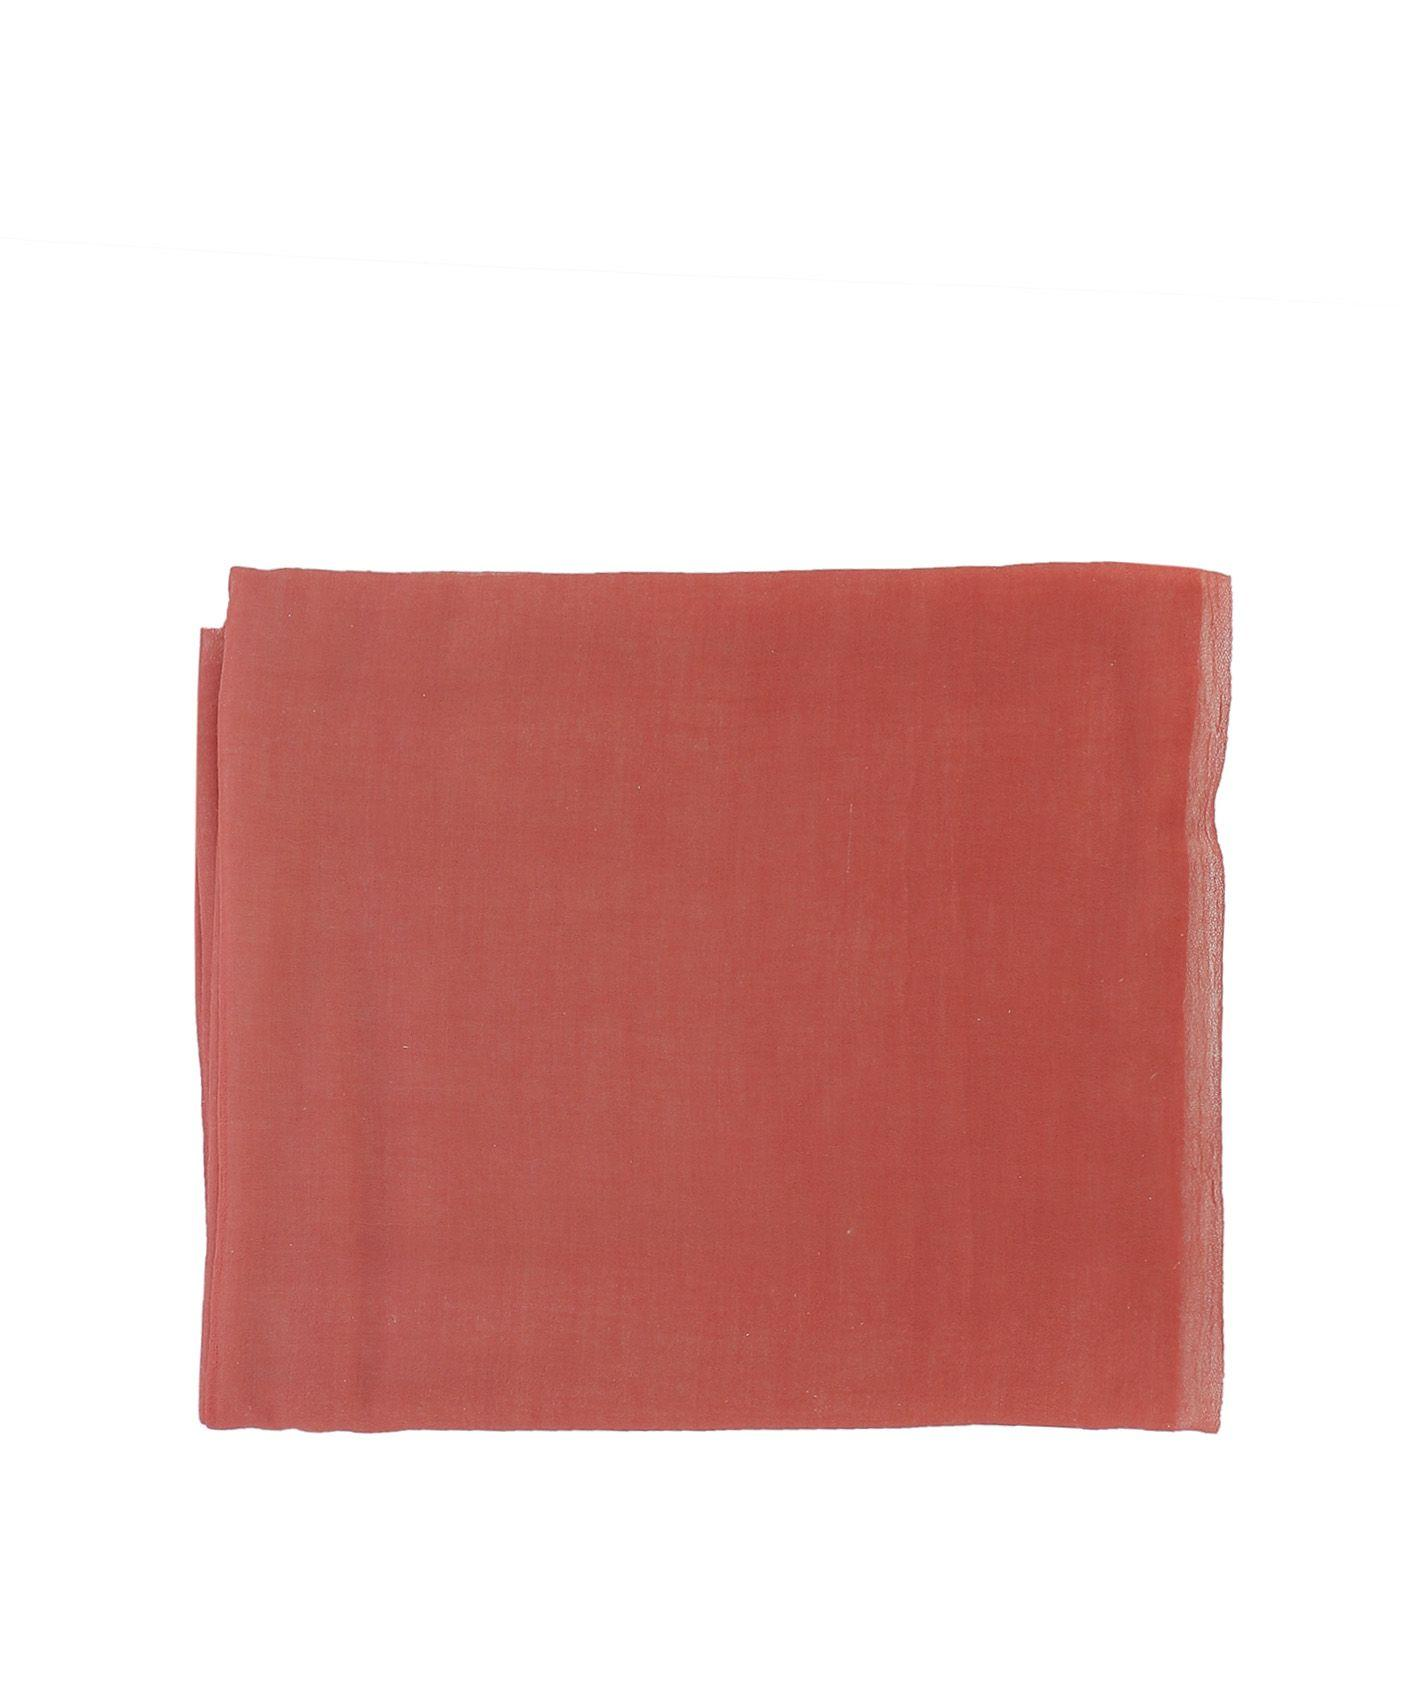 Snobby Sheep Cachemire Foulard In Red